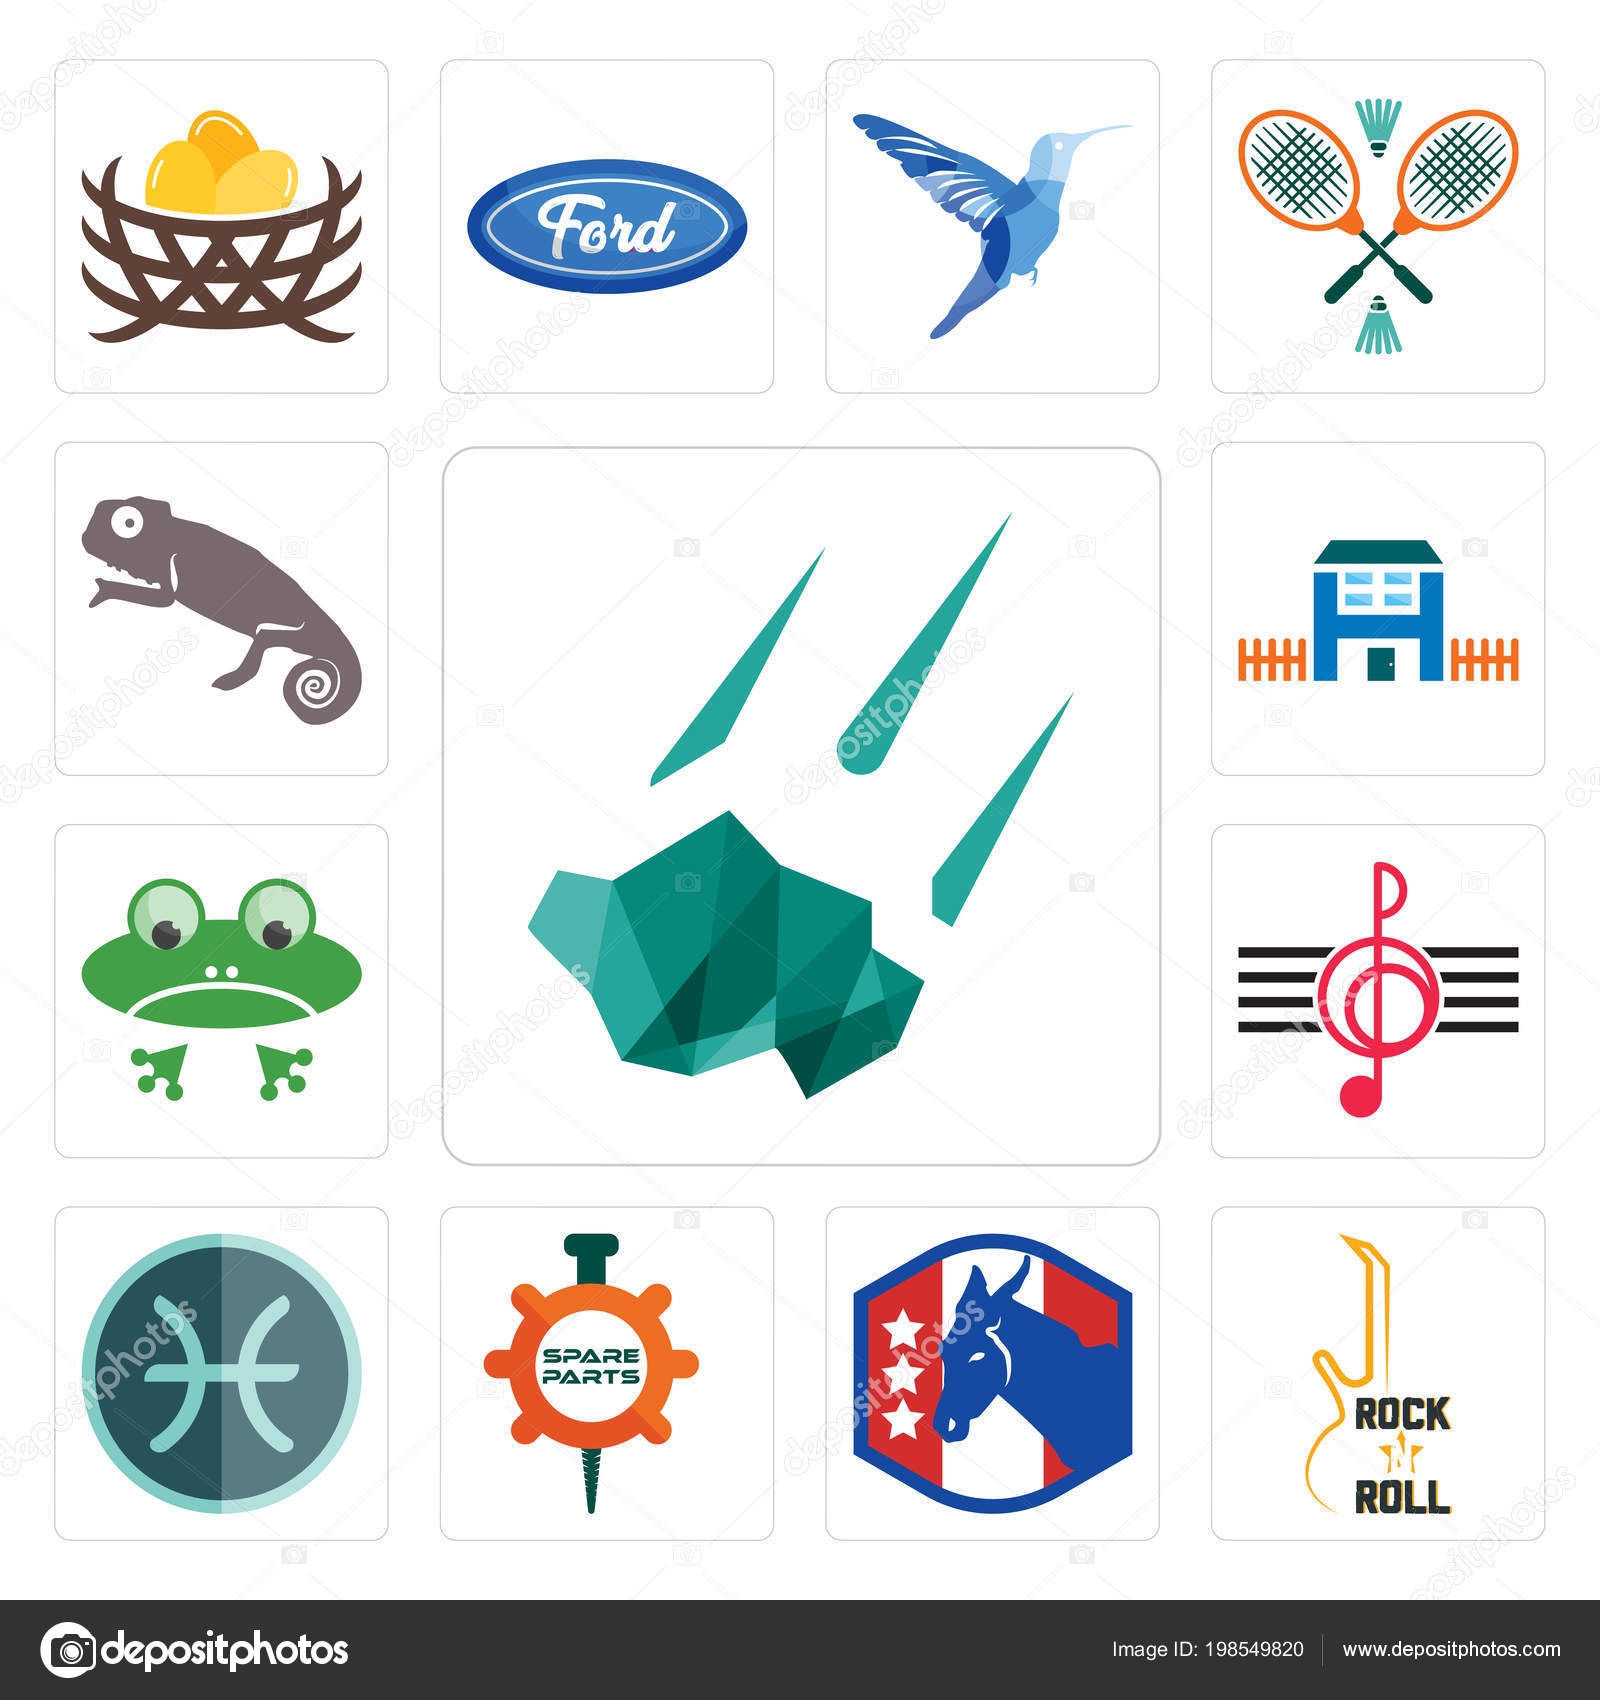 375ef7800 Set Of 13 simple editable icons such as meteorite, rock n roll, democratic  party, spare parts, pisces, treble clef, frog, h house, chameleon can be  used for ...